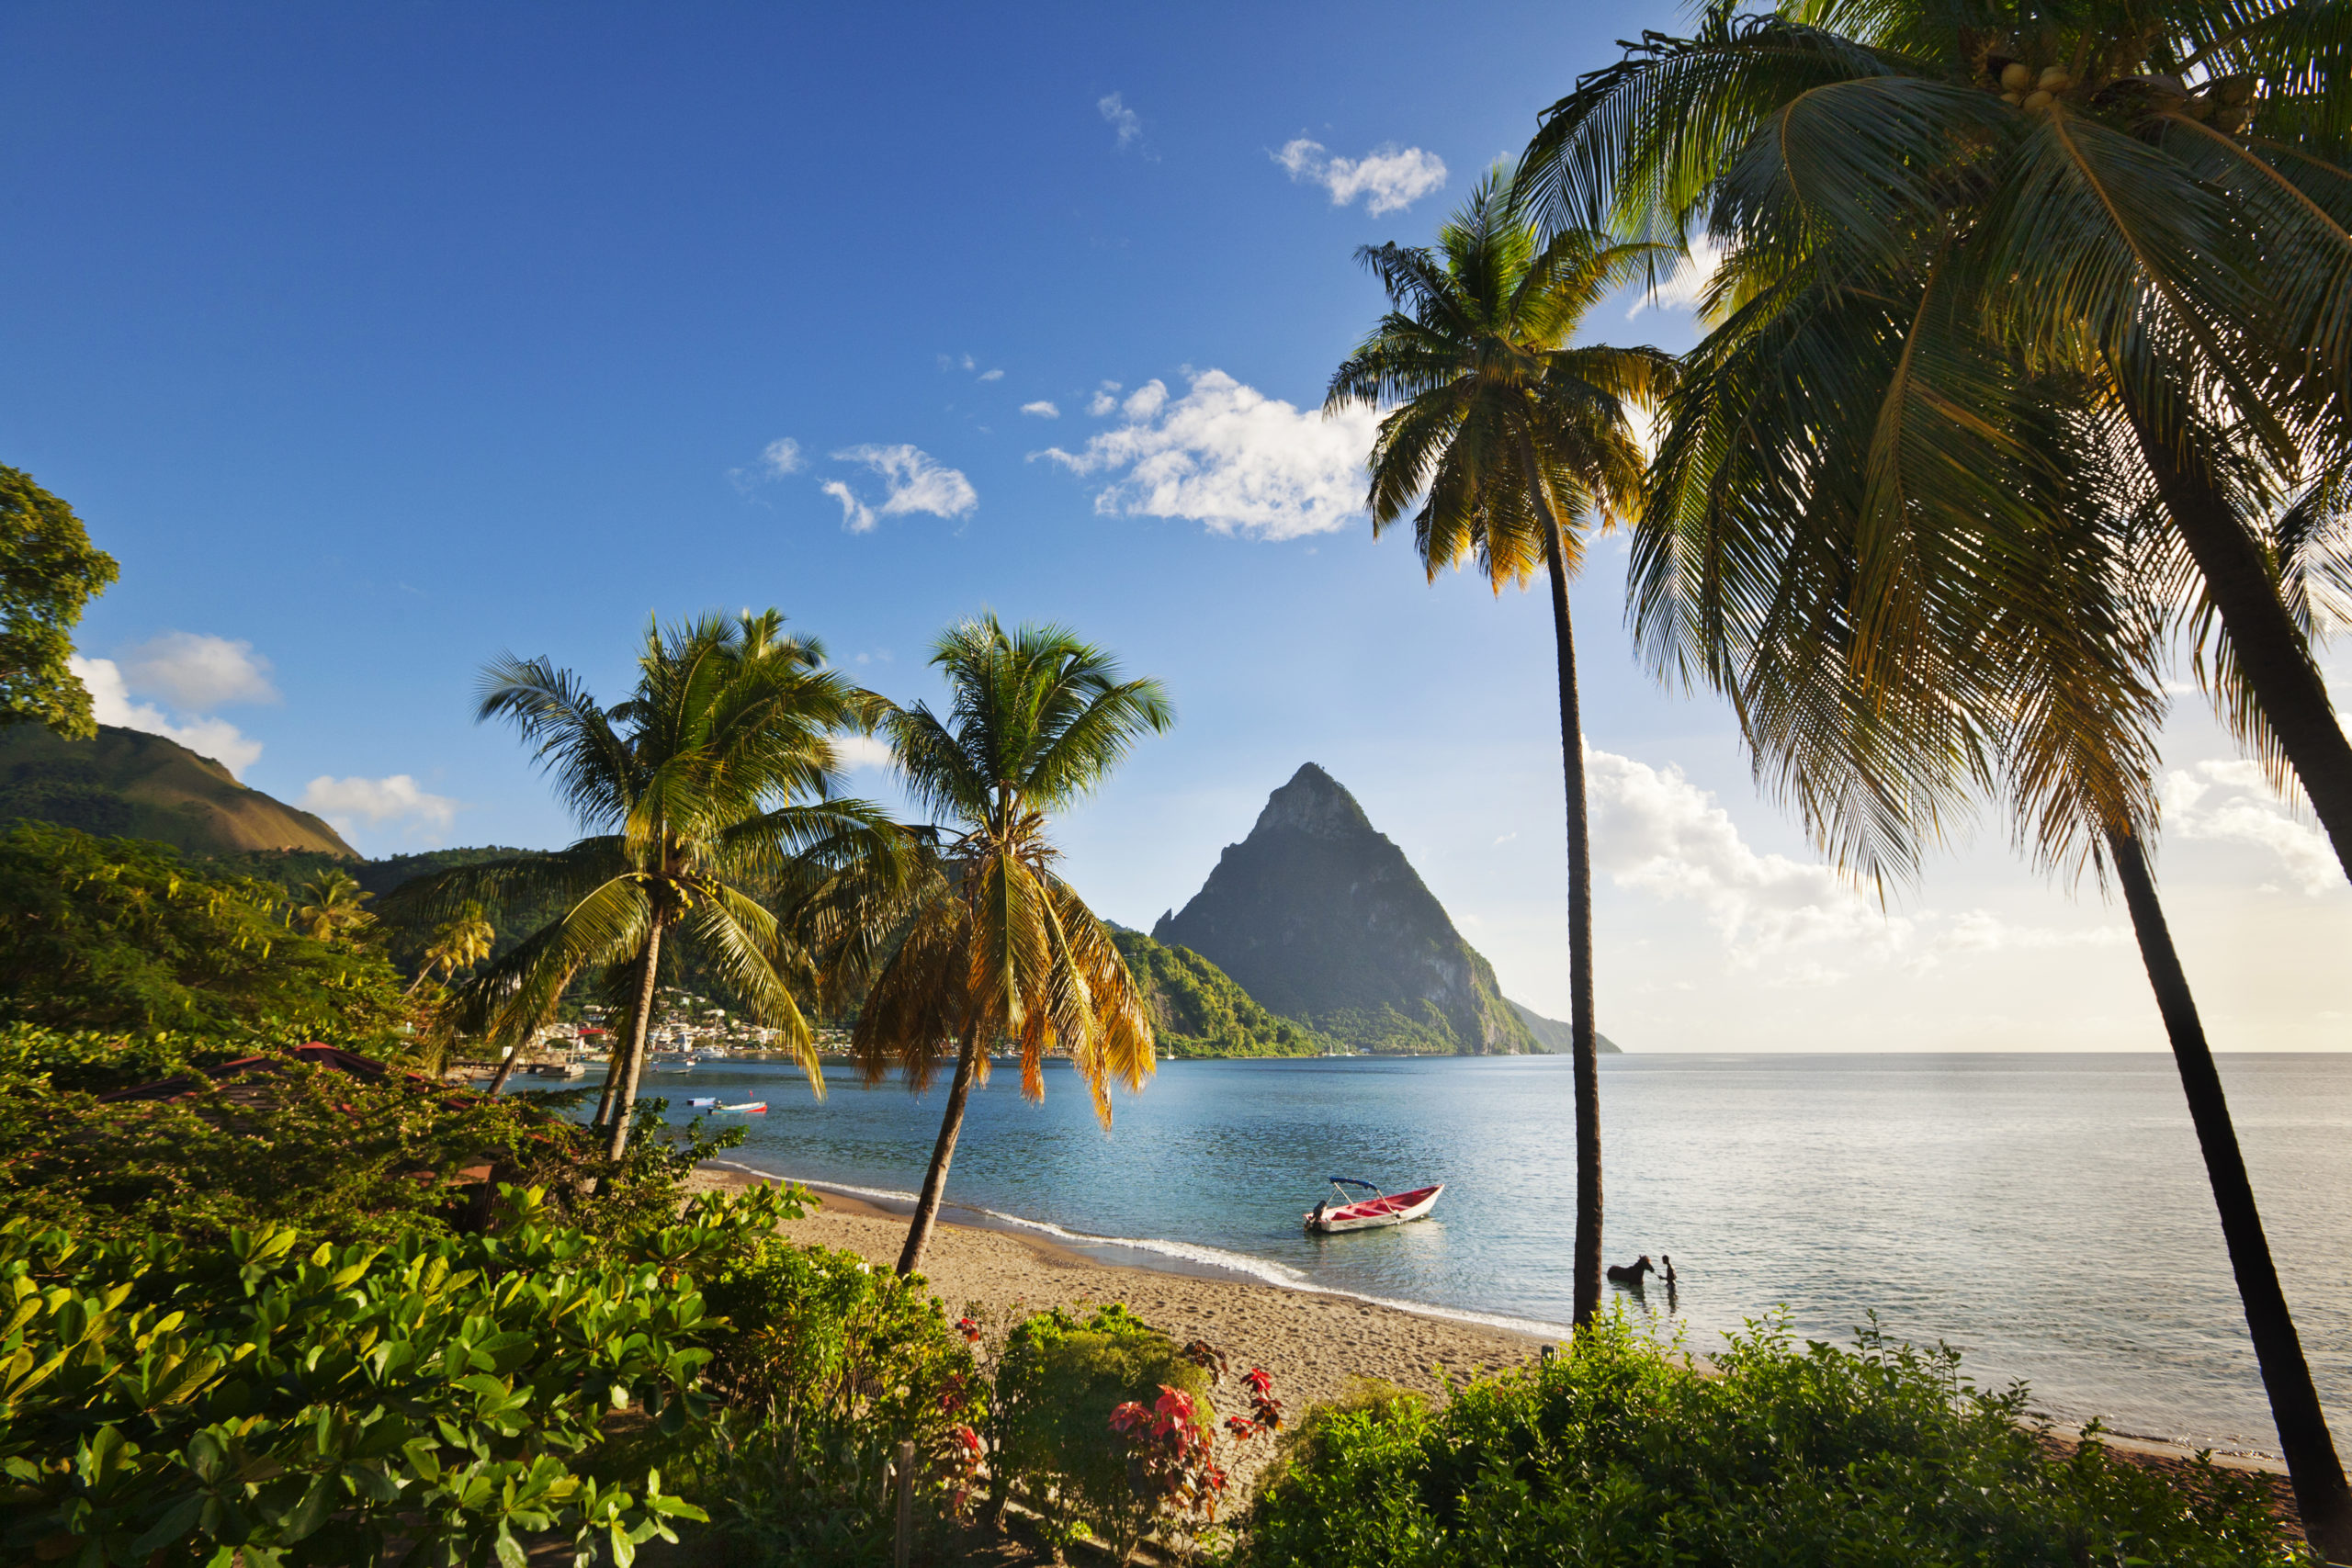 'Seven Minutes in Saint Lucia' Virtual Series Takes You There During Lockdown! Saint Lucia